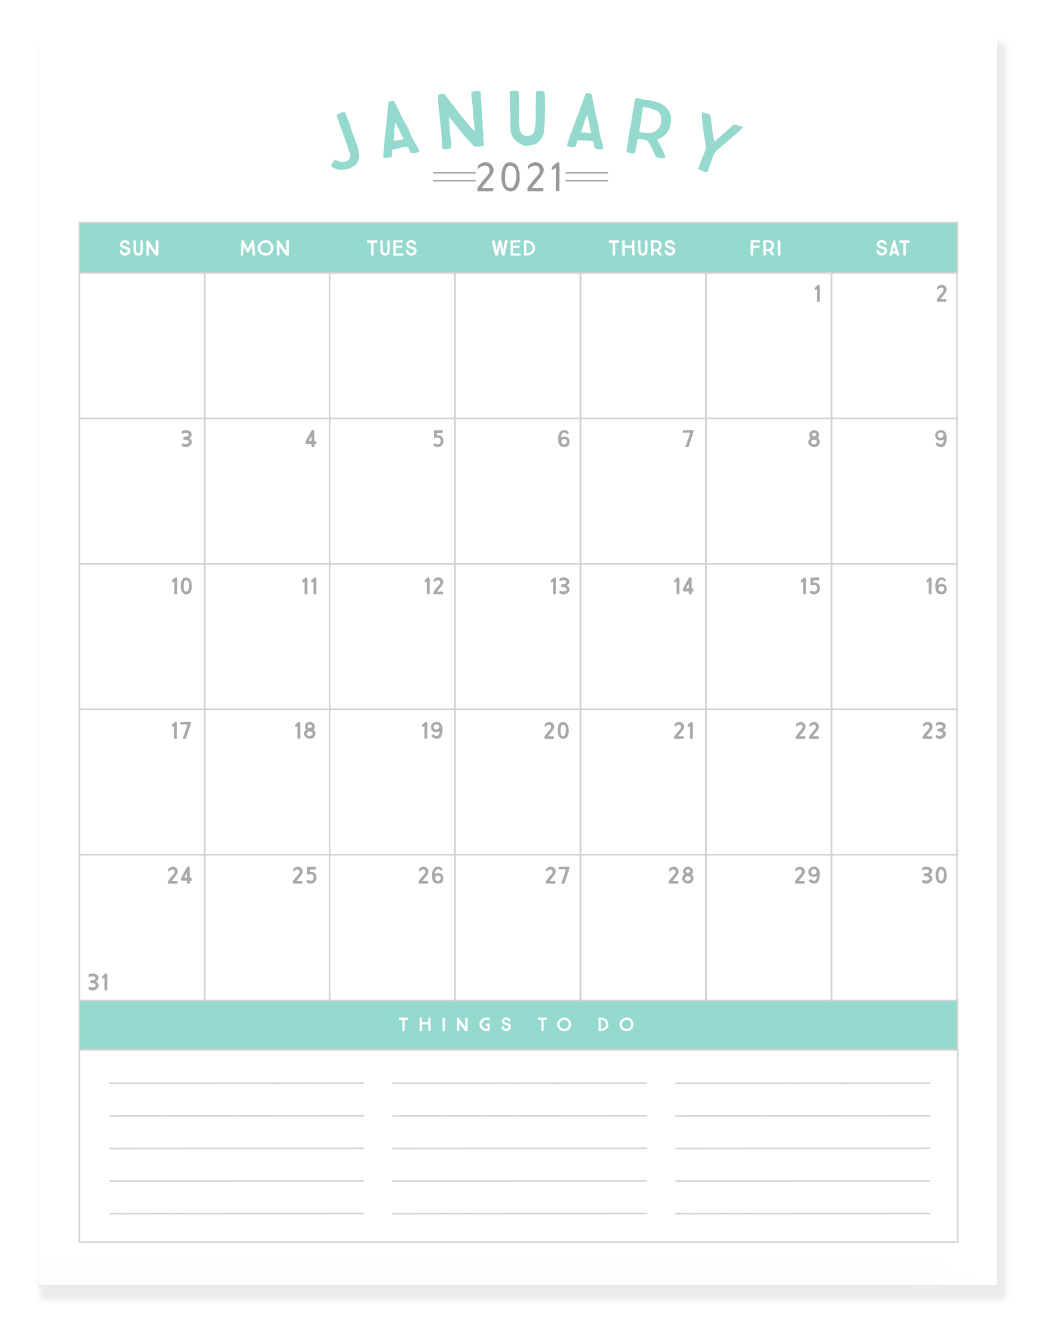 Kick off 2021 with a fresh start and a cute new calendar! This set of 12-month calendars are simple, stream-lined and the perfect planning toolto help you get organized inthe new year. Click the link below to download our free printable 2021 calendar!